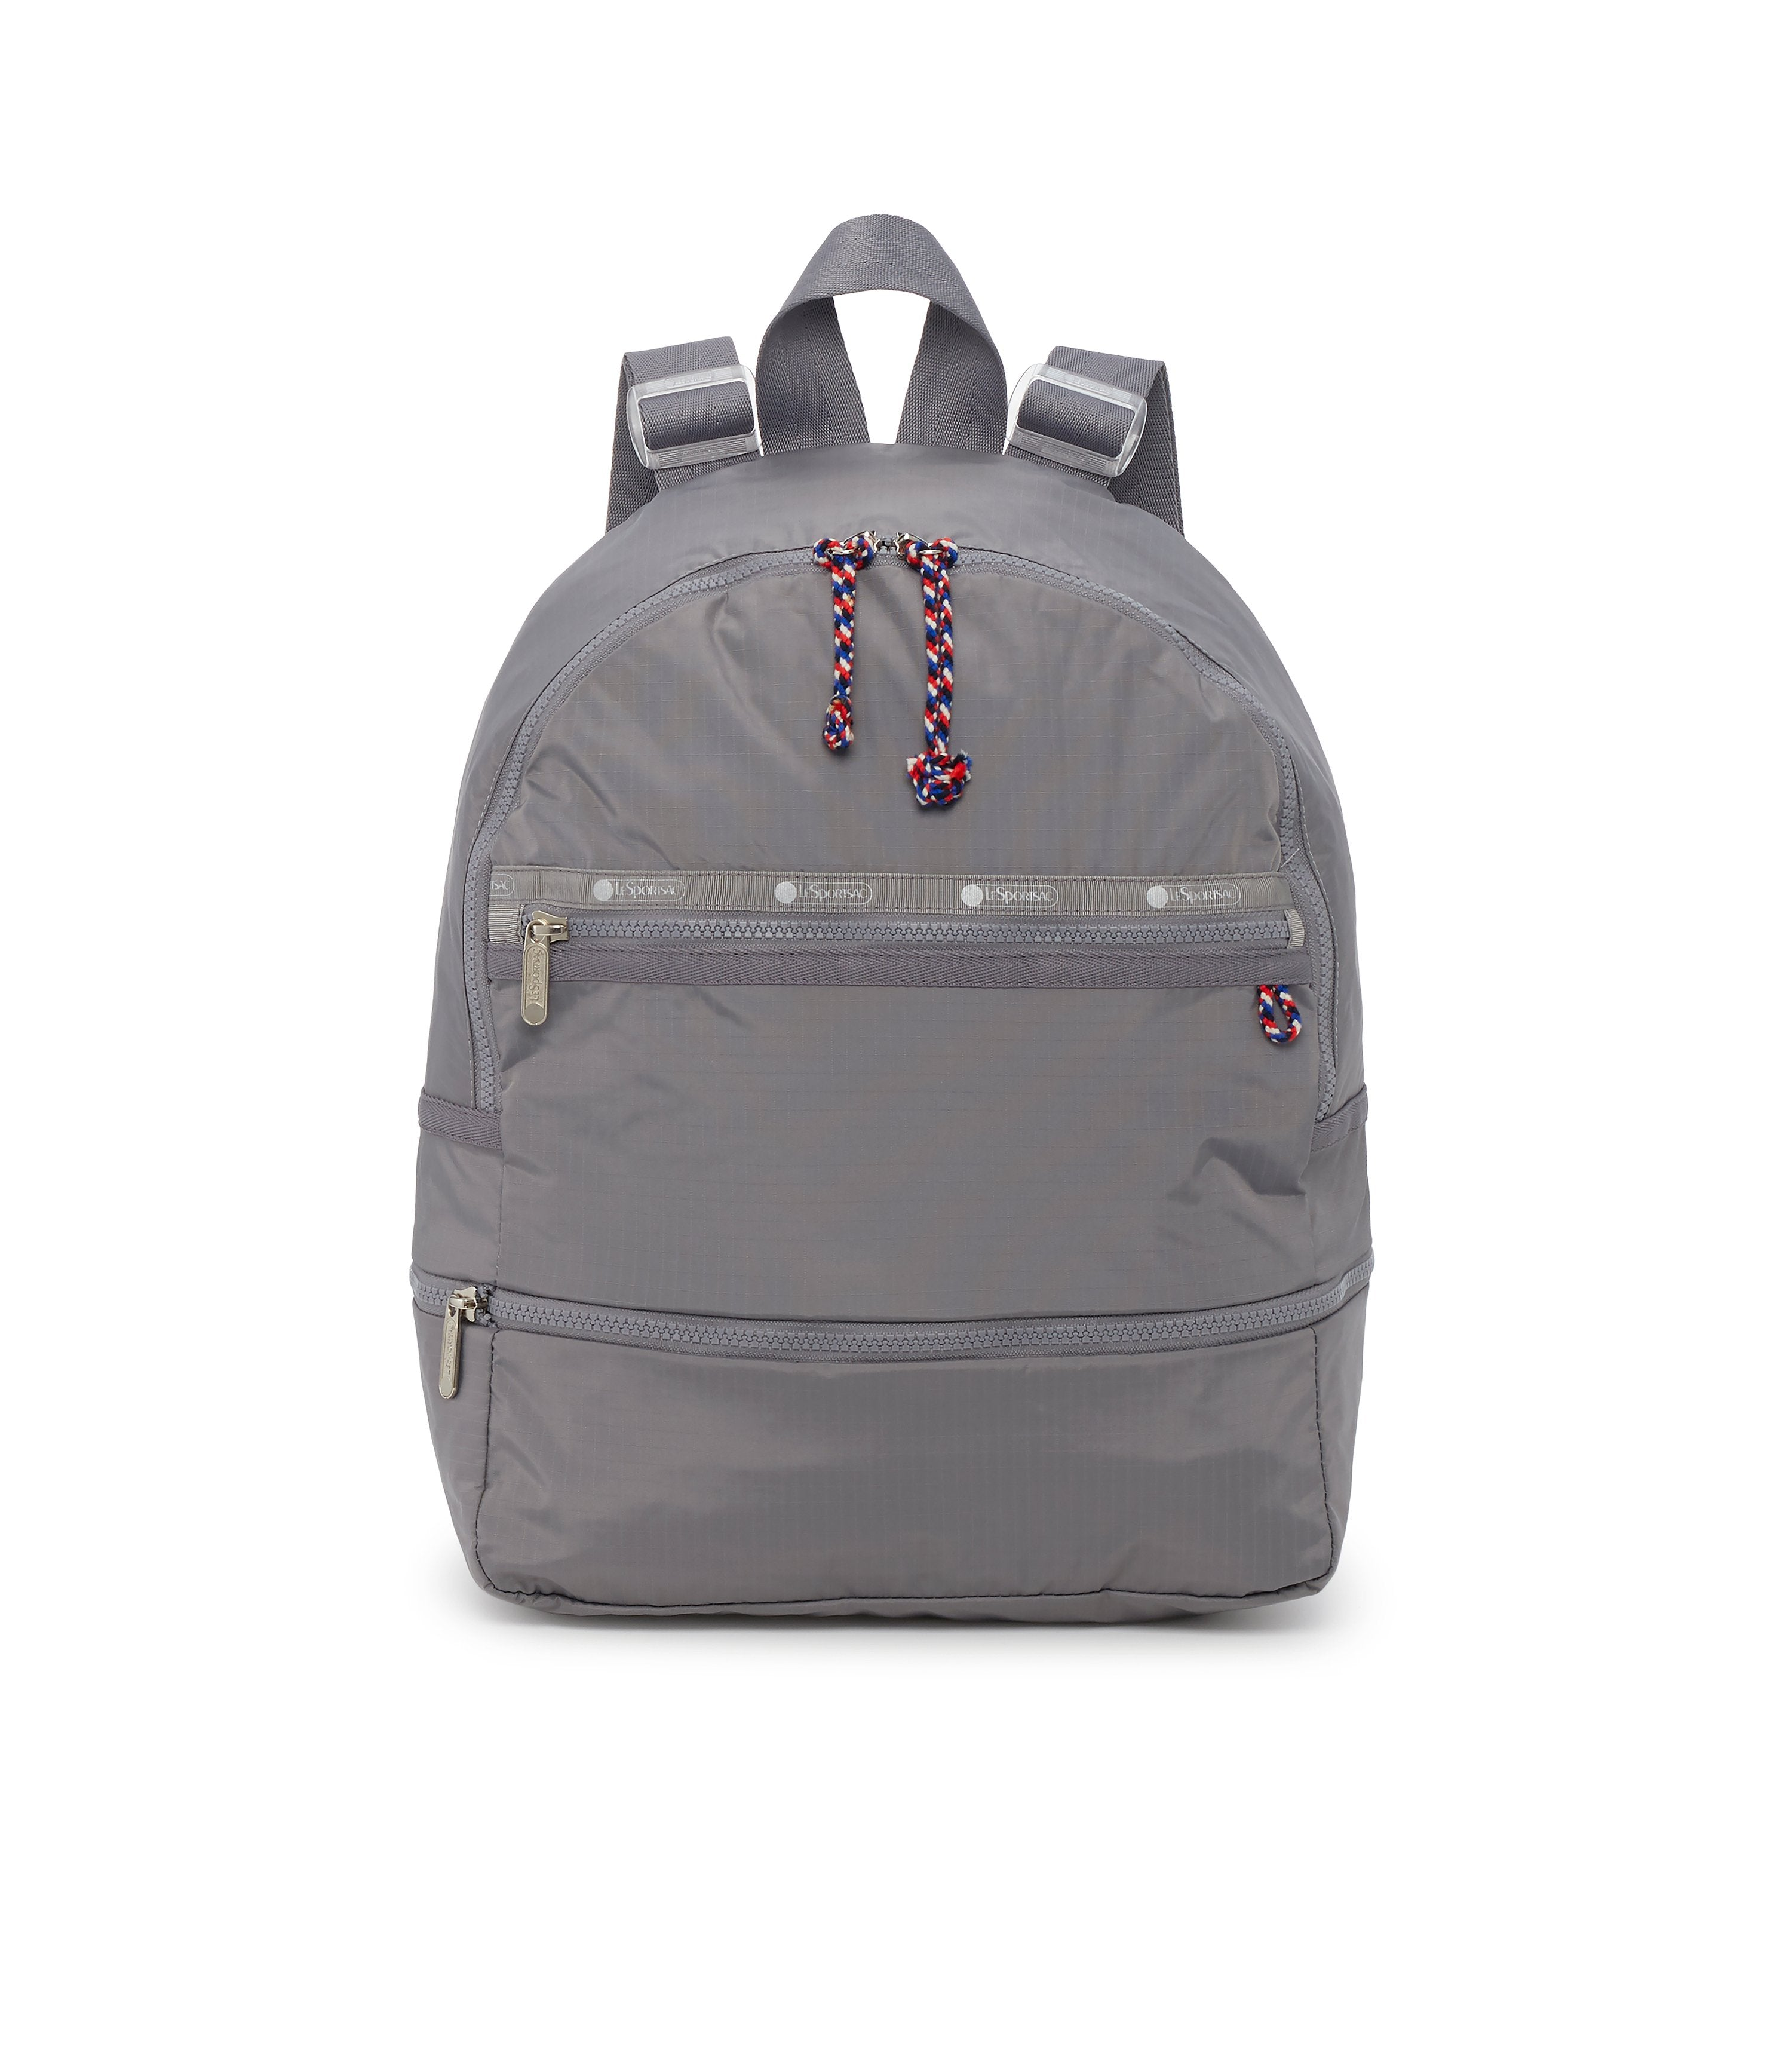 Expandable Backpack 1